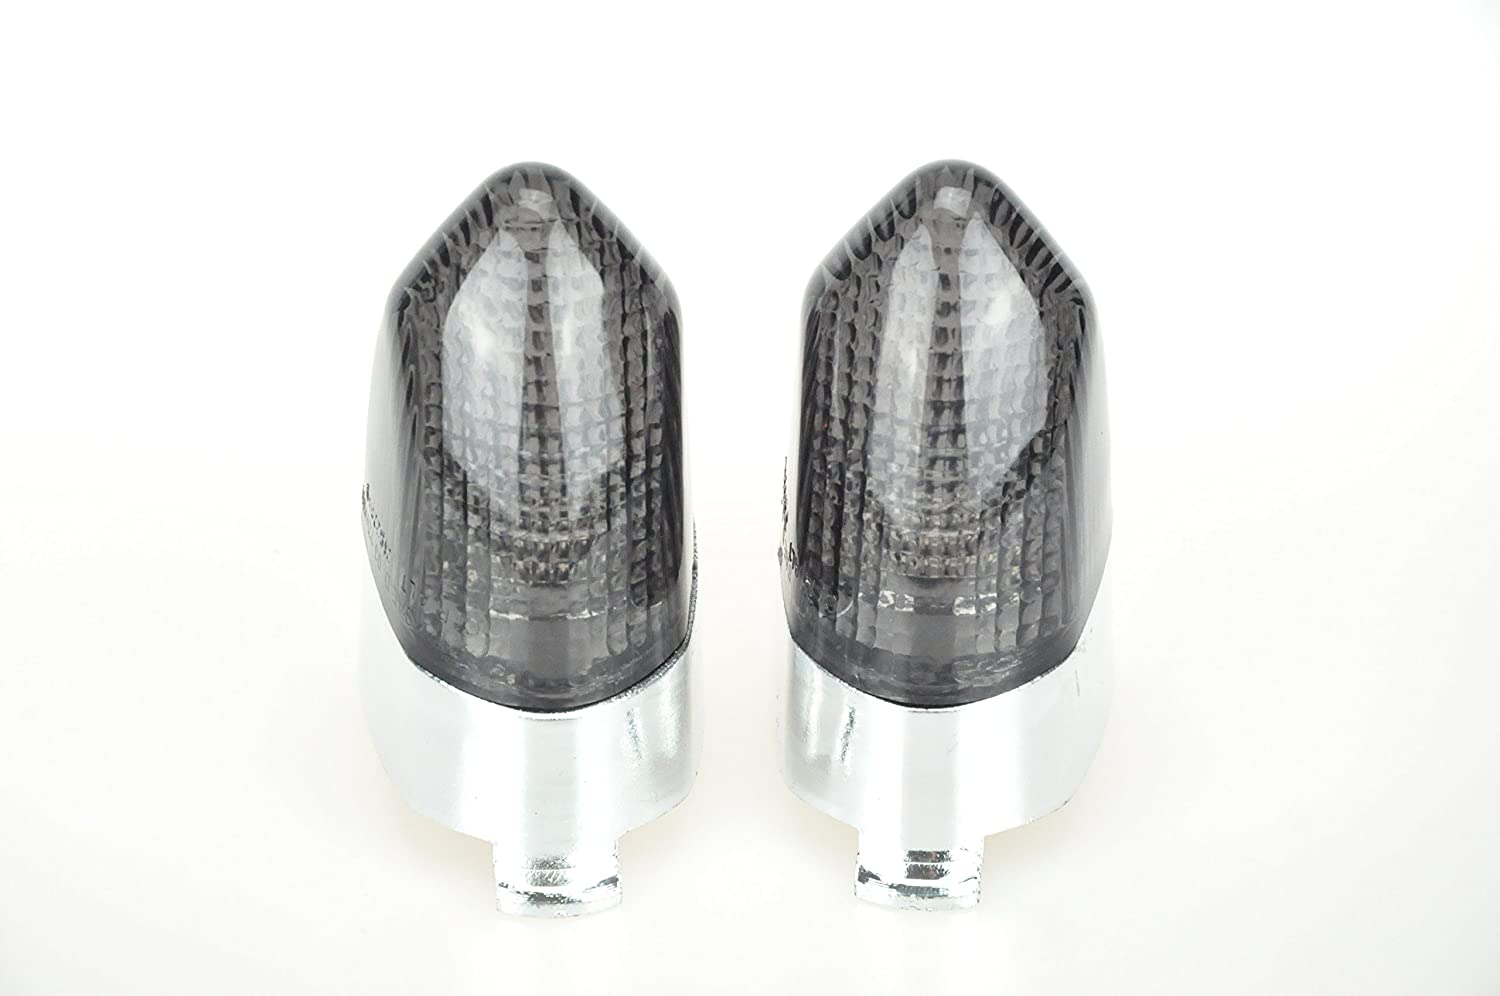 Topzone Max 66% OFF Moto Smoked Motorcycle Indicators NEW Signal K Turn Lens For